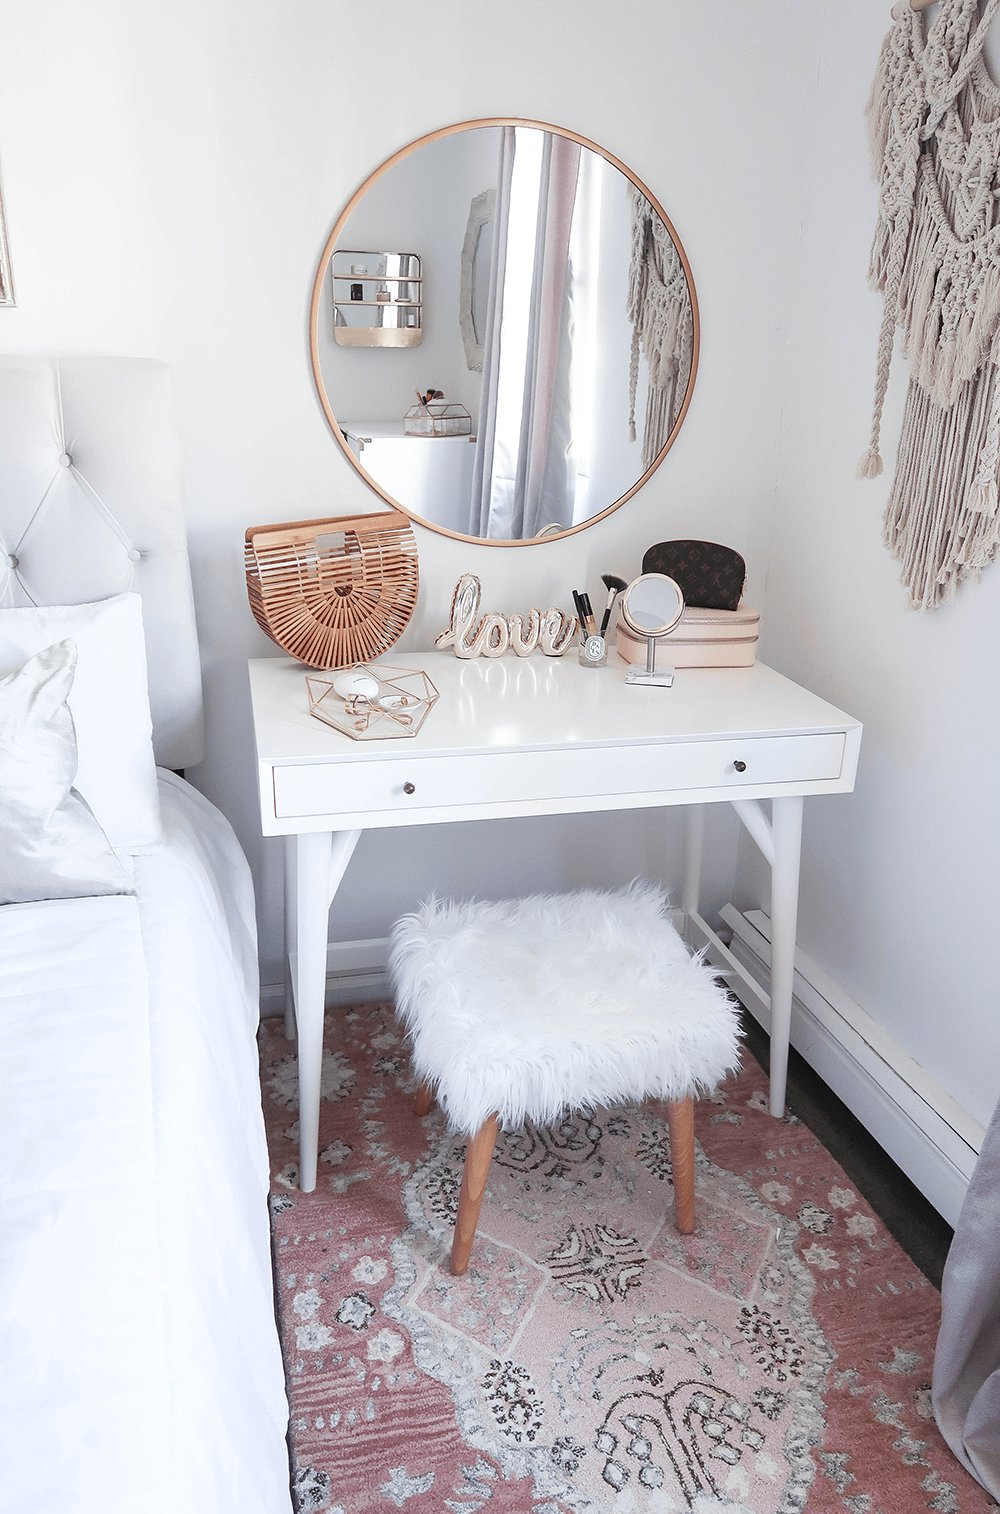 Best Styling A Vanity In A Small Space – Money Can Buy Lipstick With Pictures